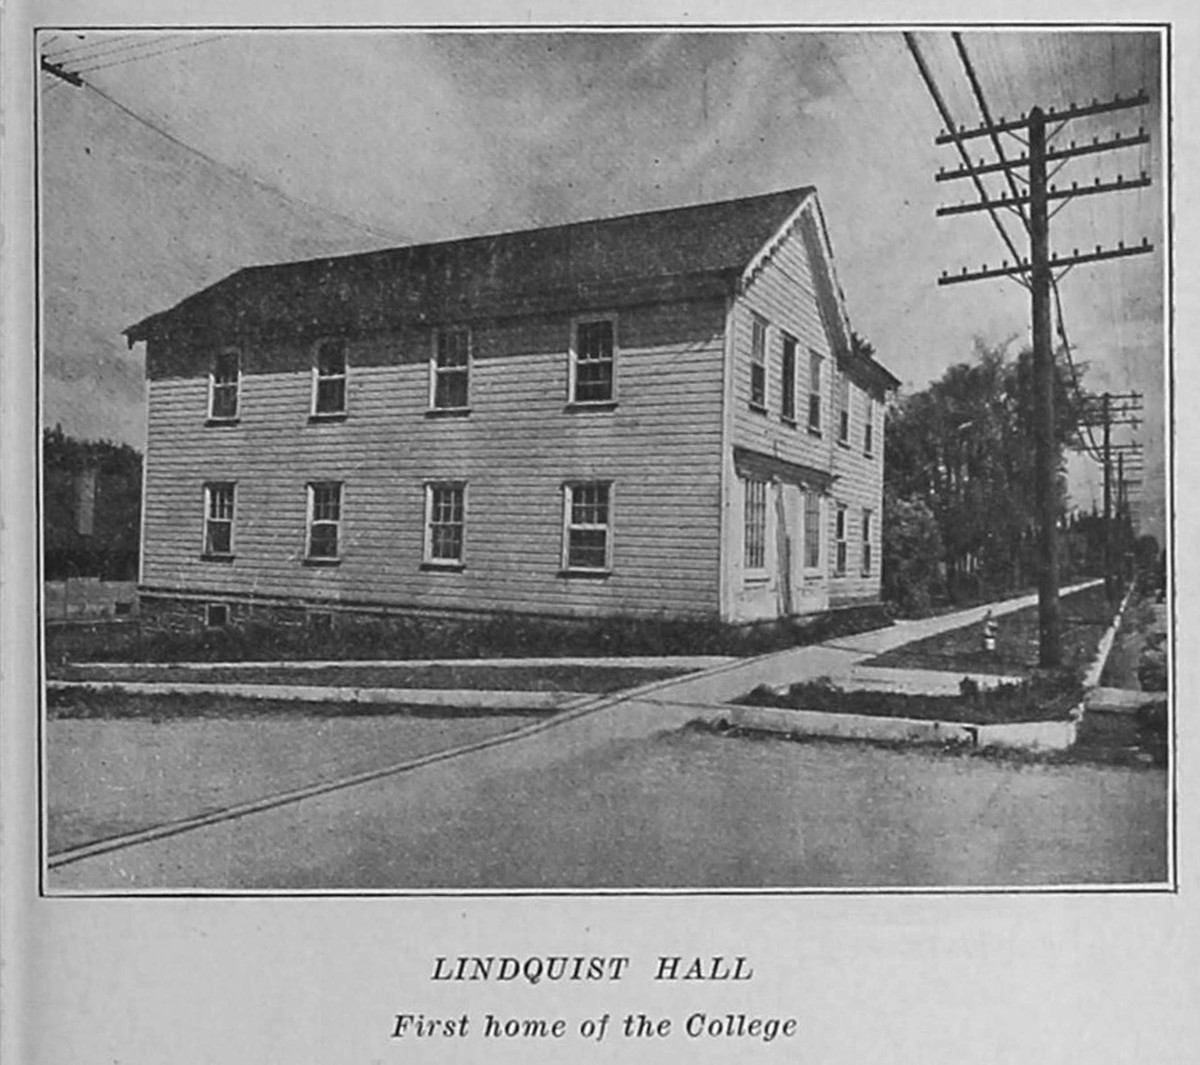 Lindquist Hall